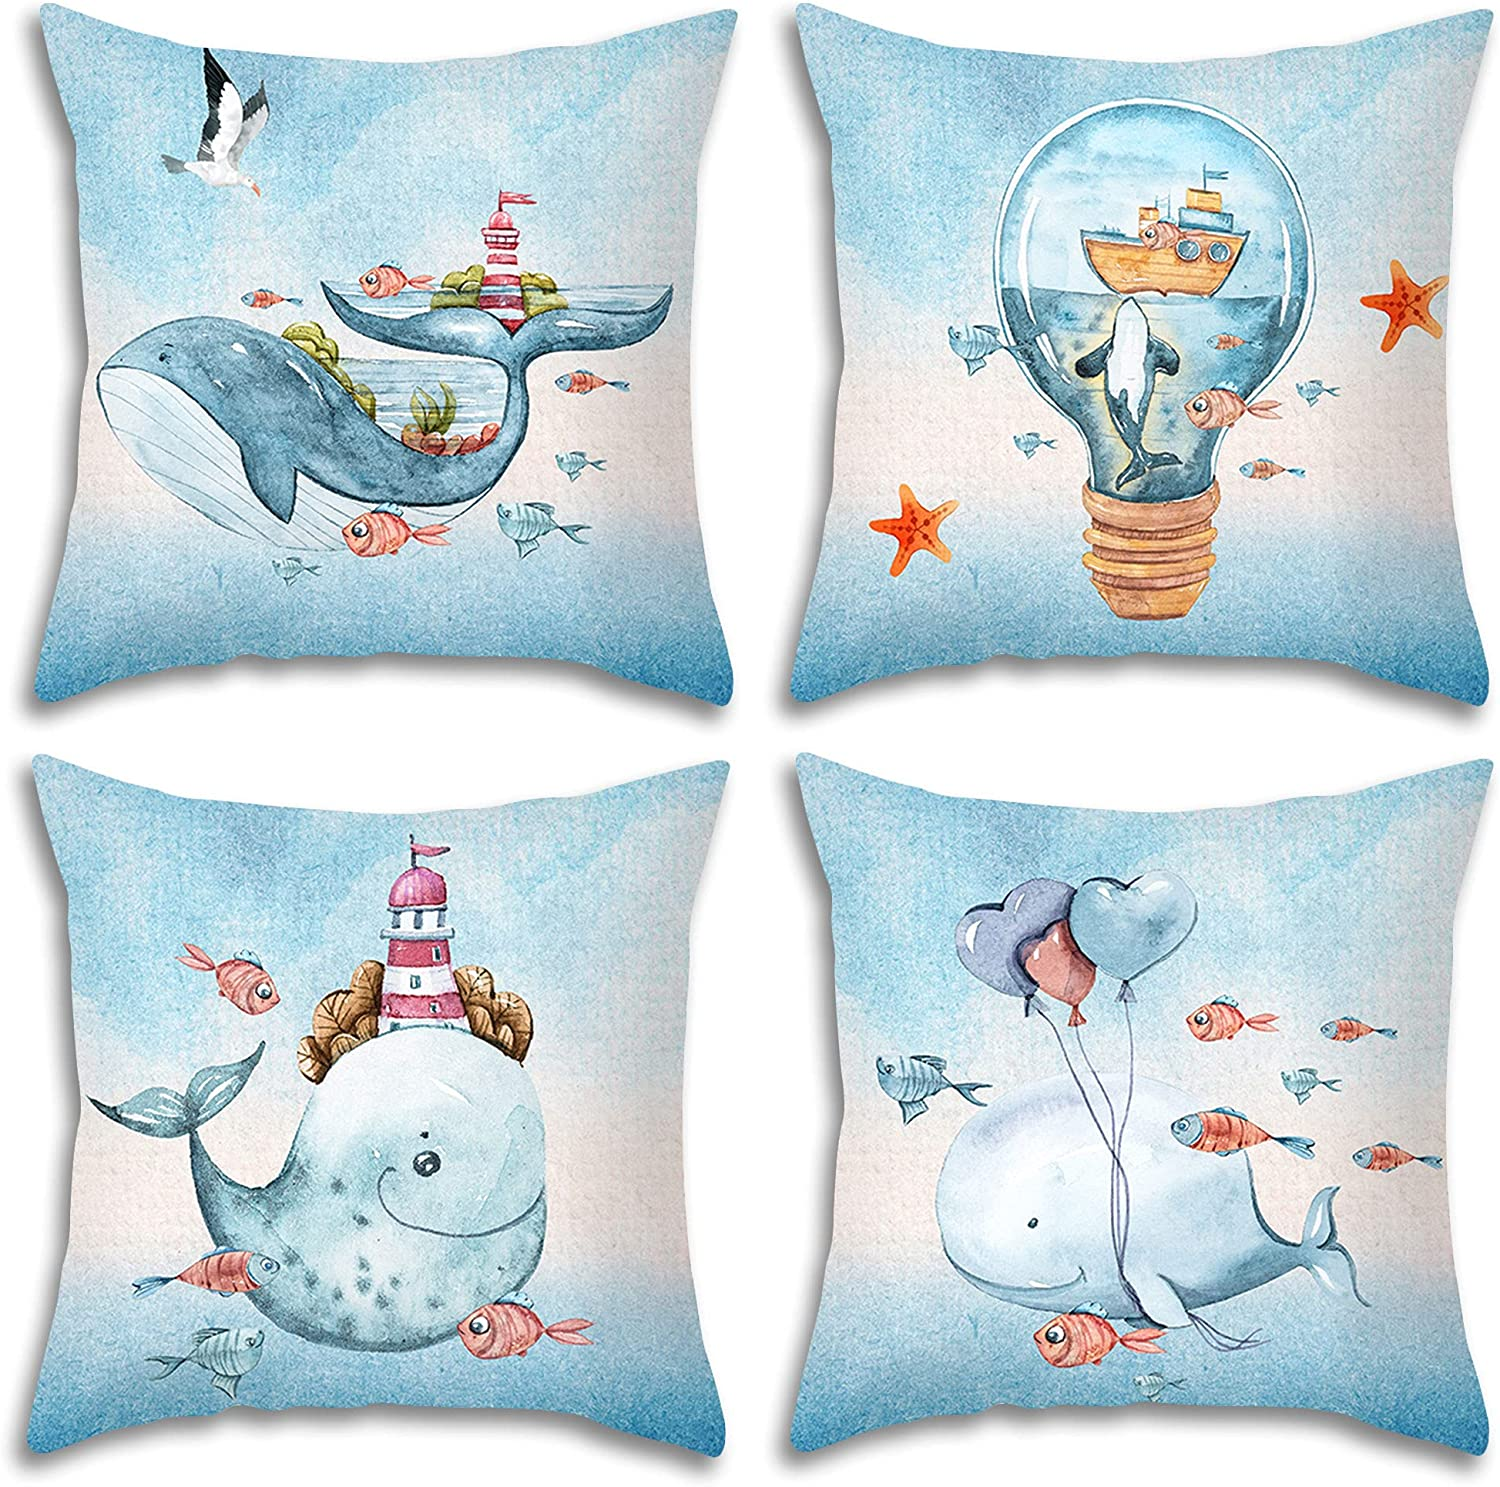 MAKABO Luxury Soft Plush Throw Pillow Cover Colorful Novelty Modern Geometry Christmas Halloween Home car Sofa Decoration Fits 18 x 18 inches 4-Pack (Fantasy Whale)